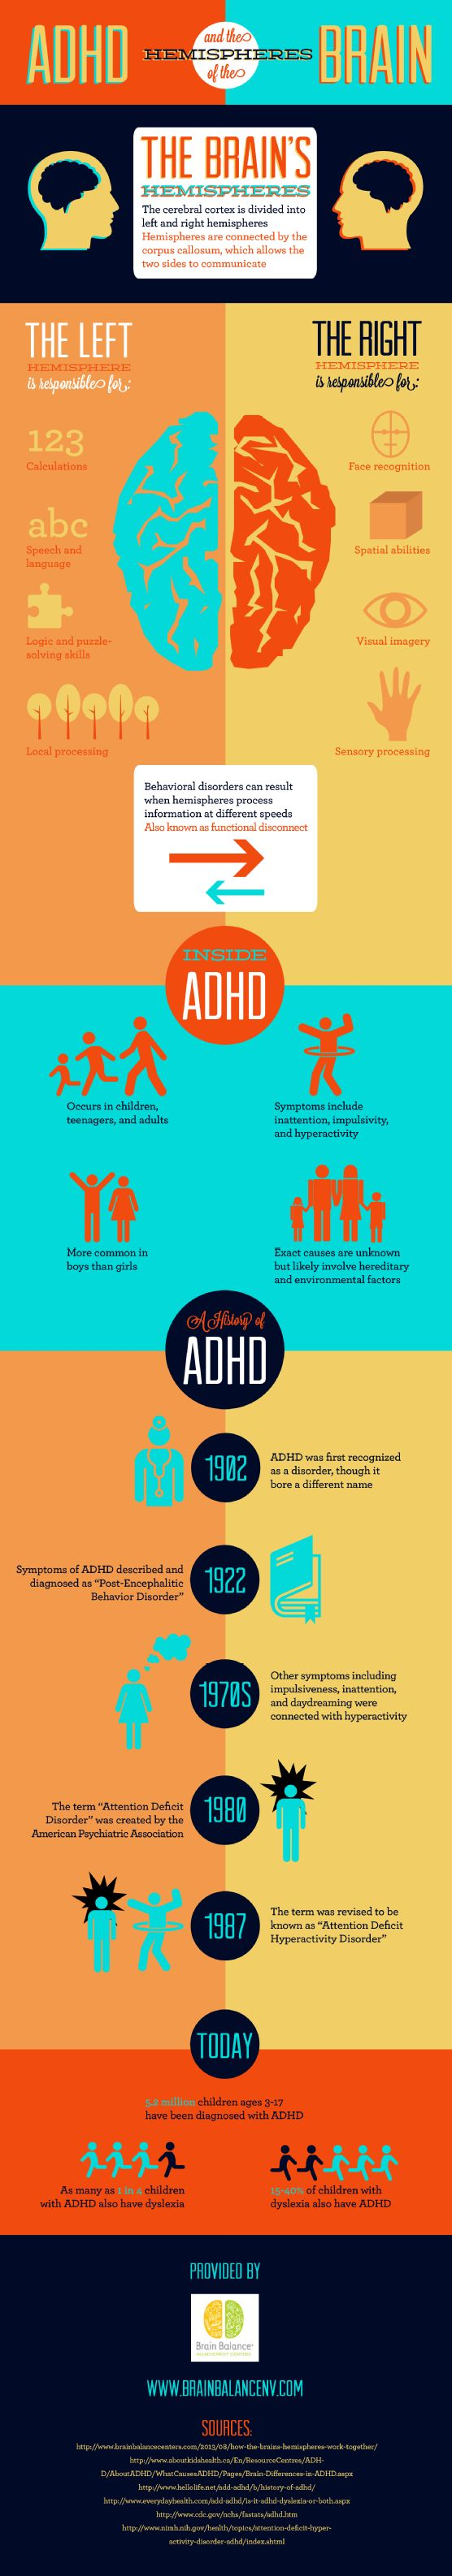 Click on this Infographic to learn more about the symptoms of ADHD. #ADHDawareness